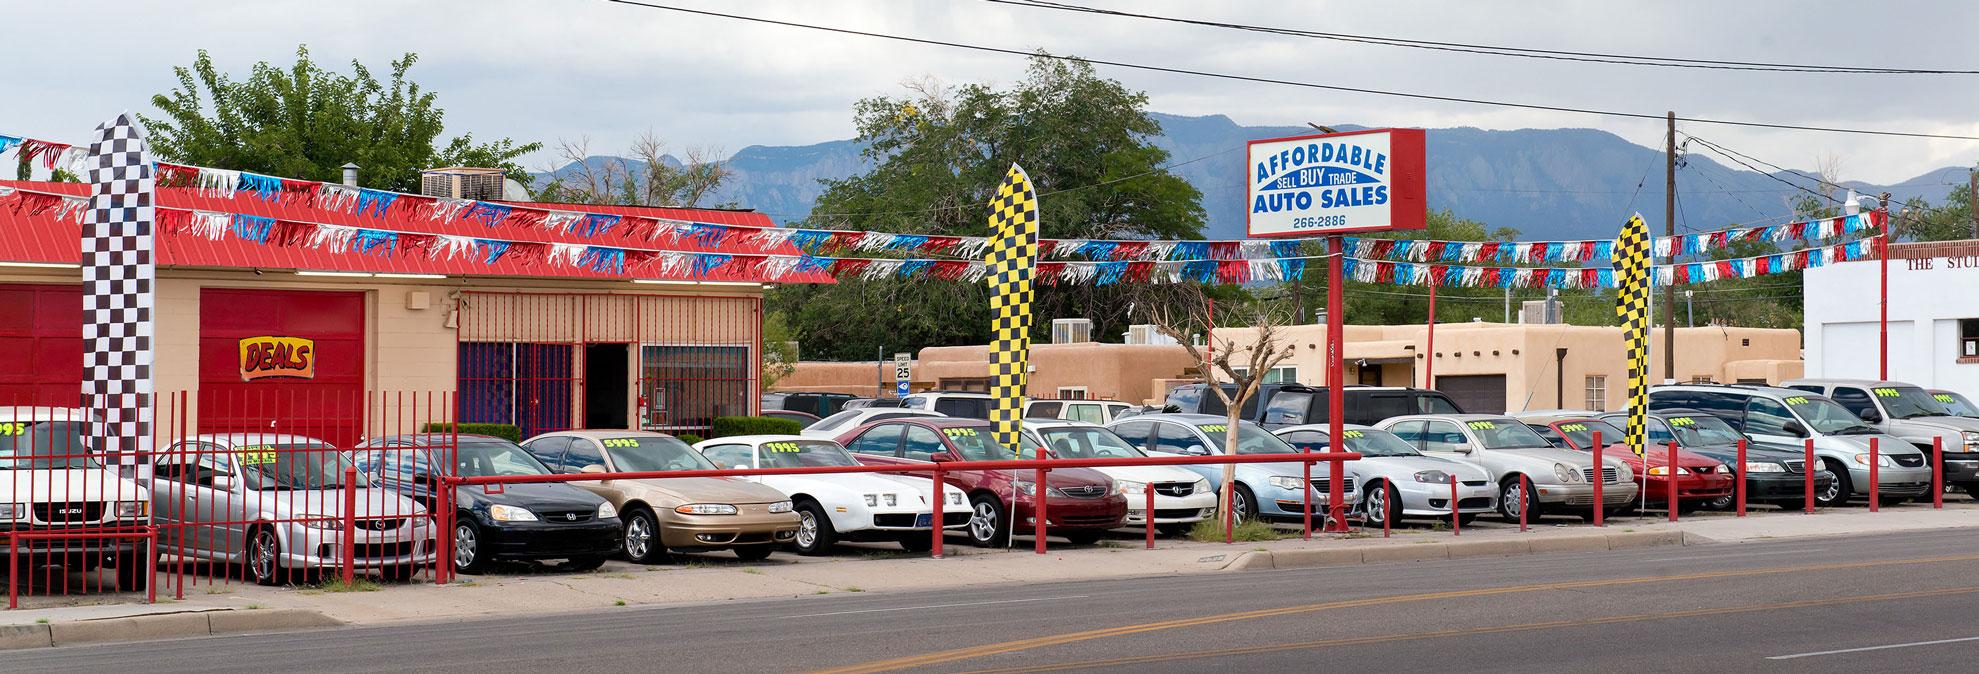 Buy Here Pay Here Lots >> Protect Yourself From Used-Car Sales Tactics - Consumer Reports